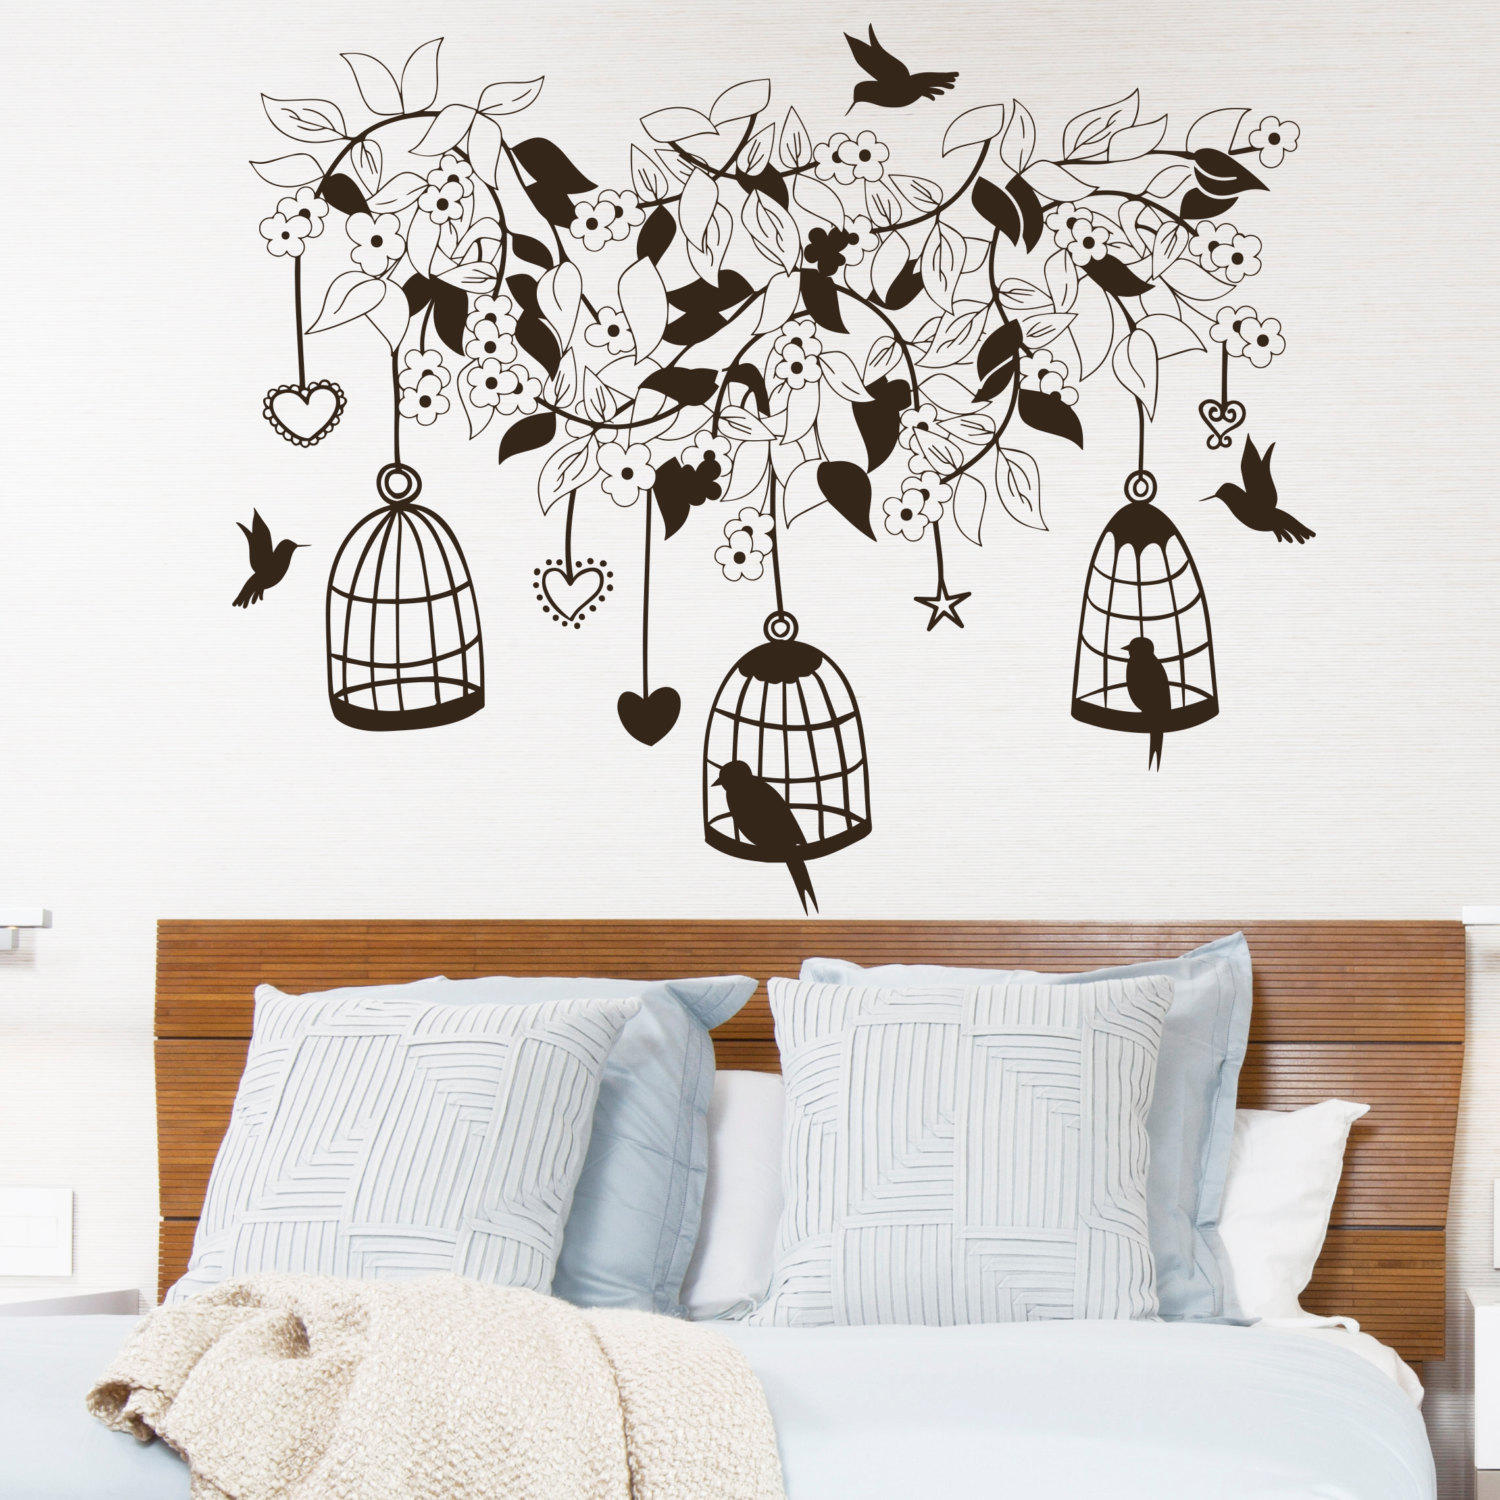 Wall Decor Bird Design : Wall decal flowers tree birds in cage from decalsfromdavid on